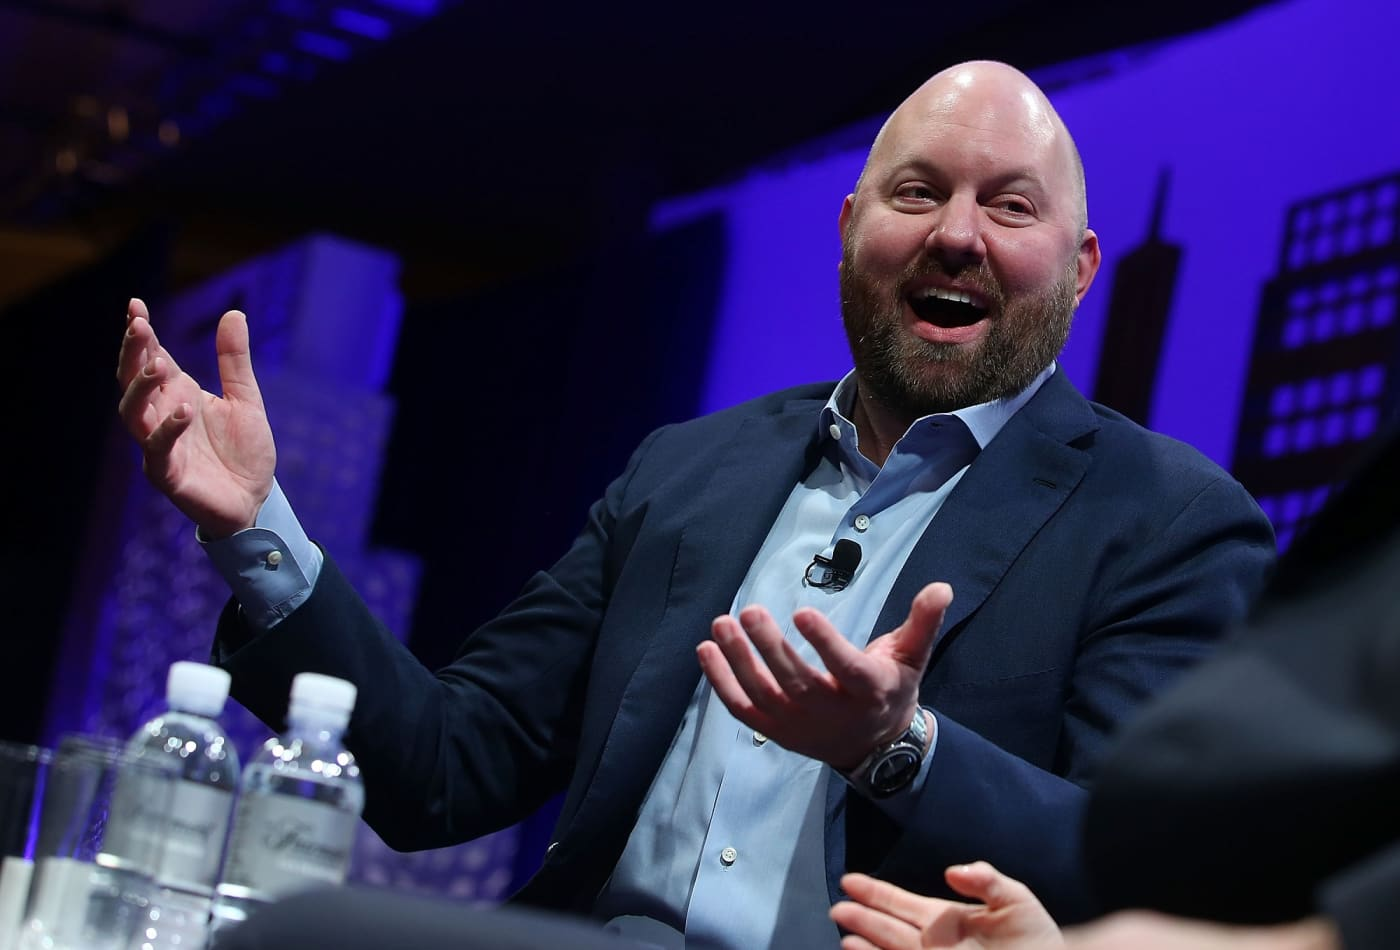 Silicon Valley billionaire VC Marc Andreessen recommends these 7 books